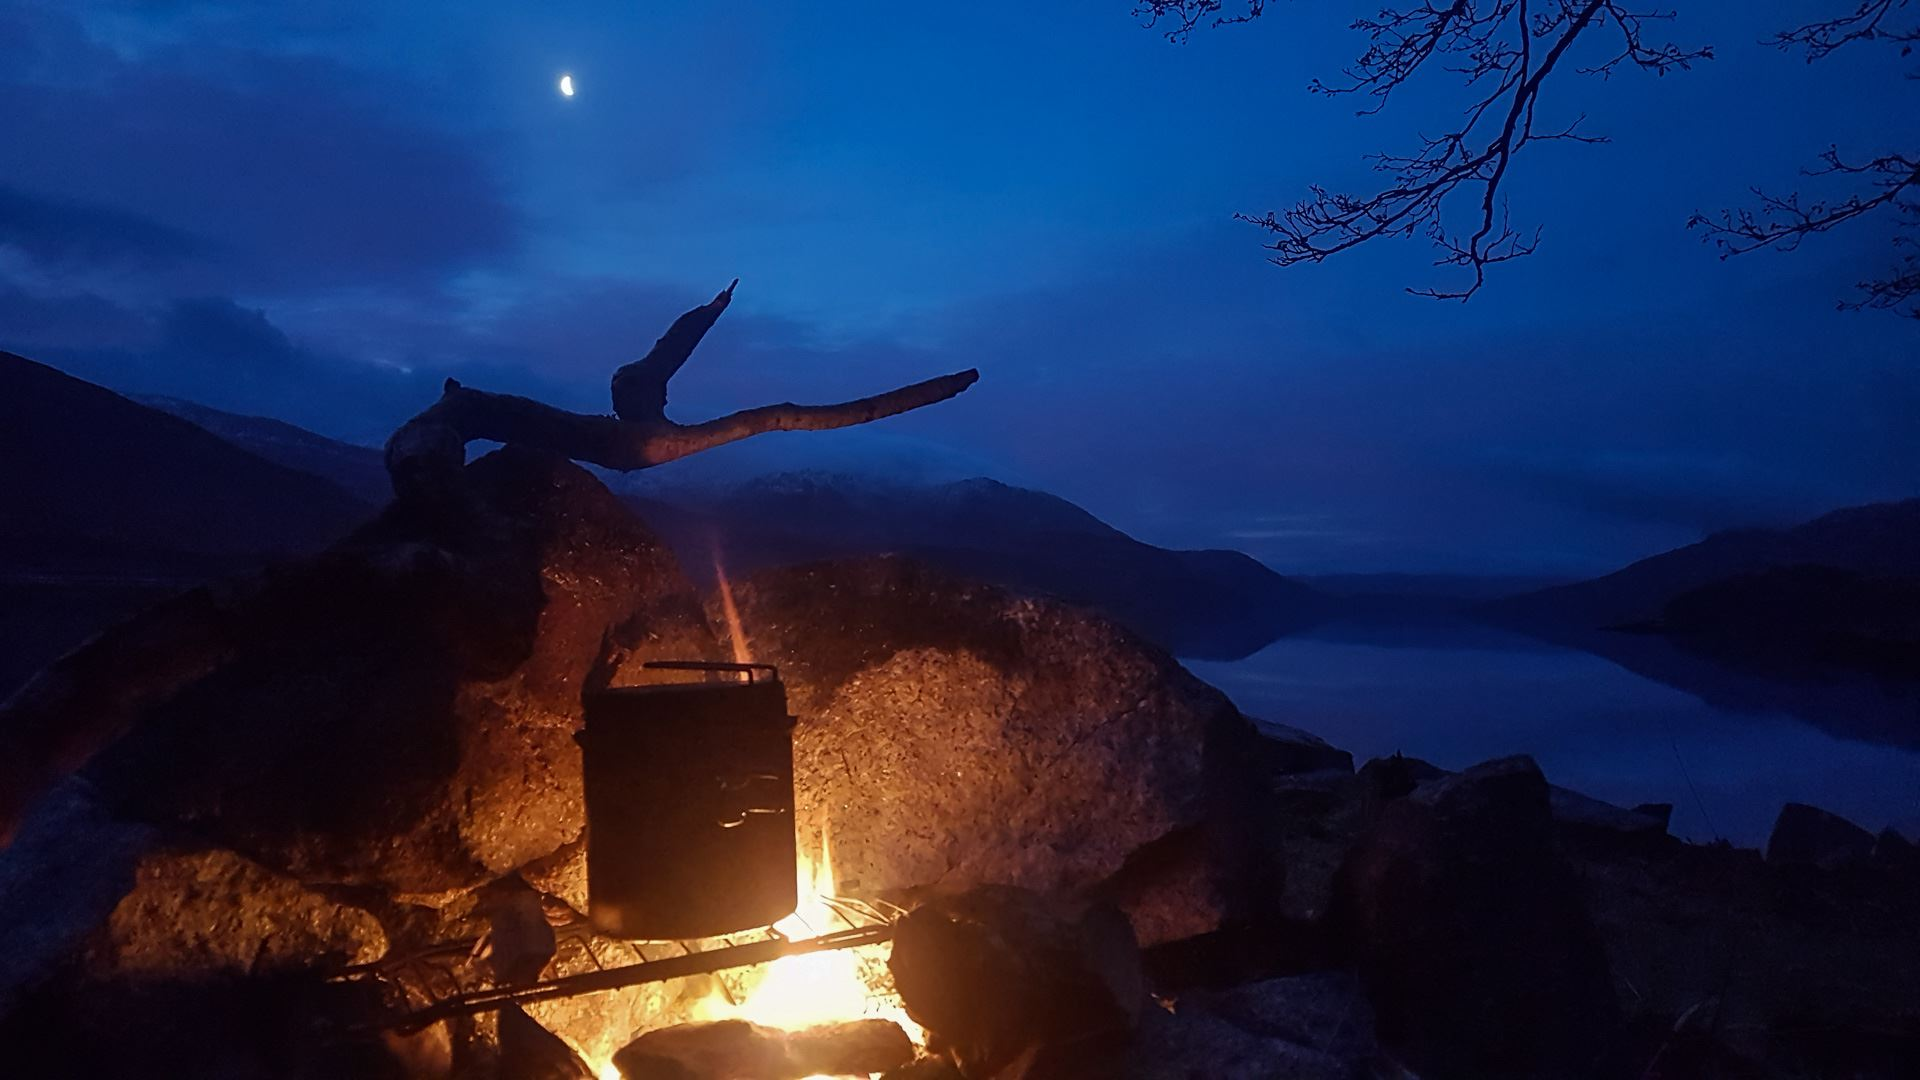 Coffee bubbling away on my campfire in the dawn of a lovely calm January morning. A half moon is still shining over a very still Loch Etive in the western highlands of Scotland